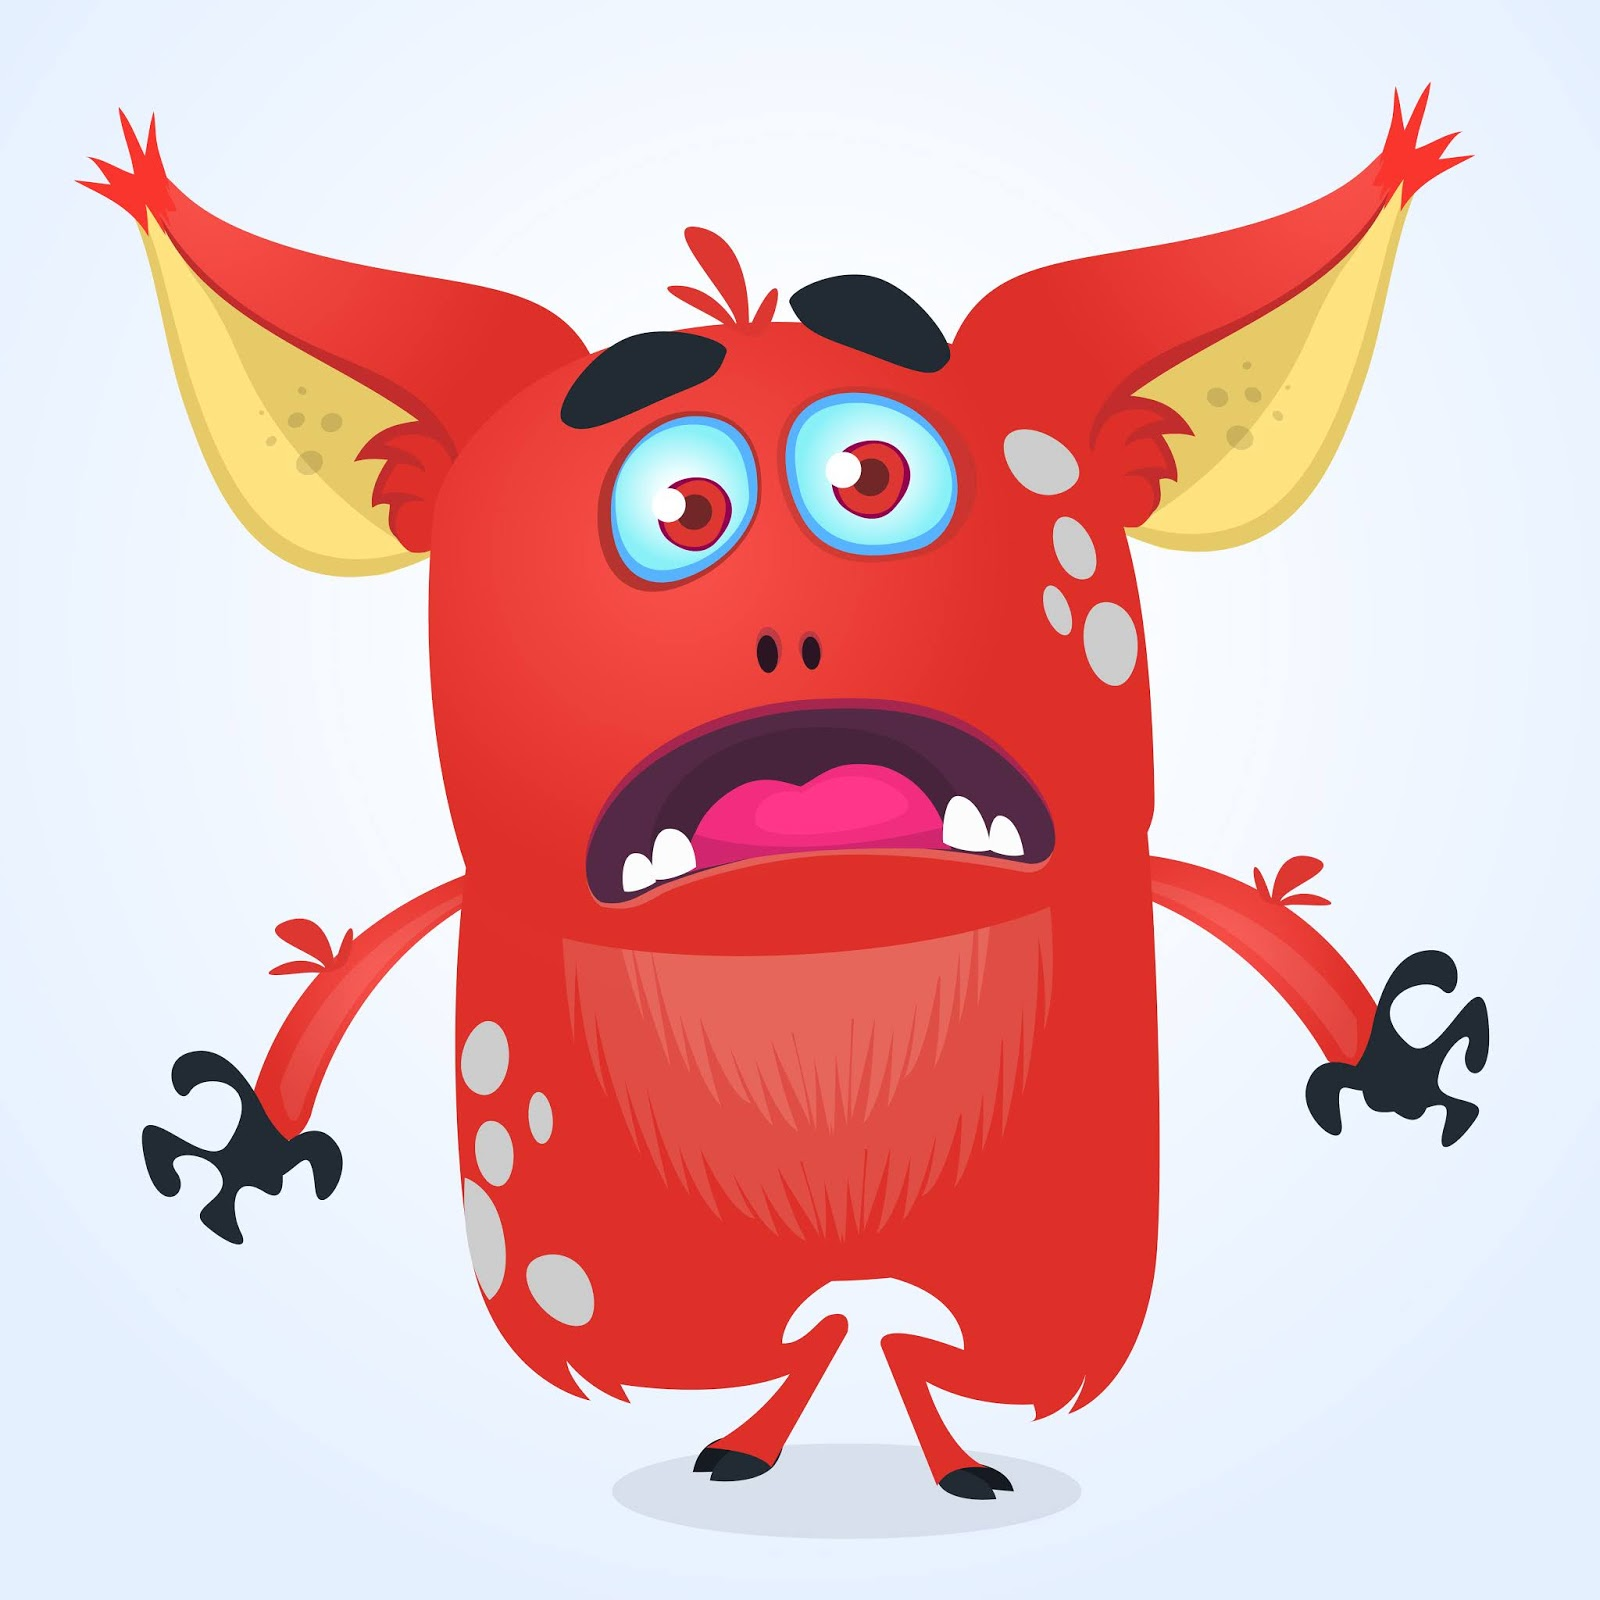 Angry Cartoon Monster Halloween Free Download Vector CDR, AI, EPS and PNG Formats